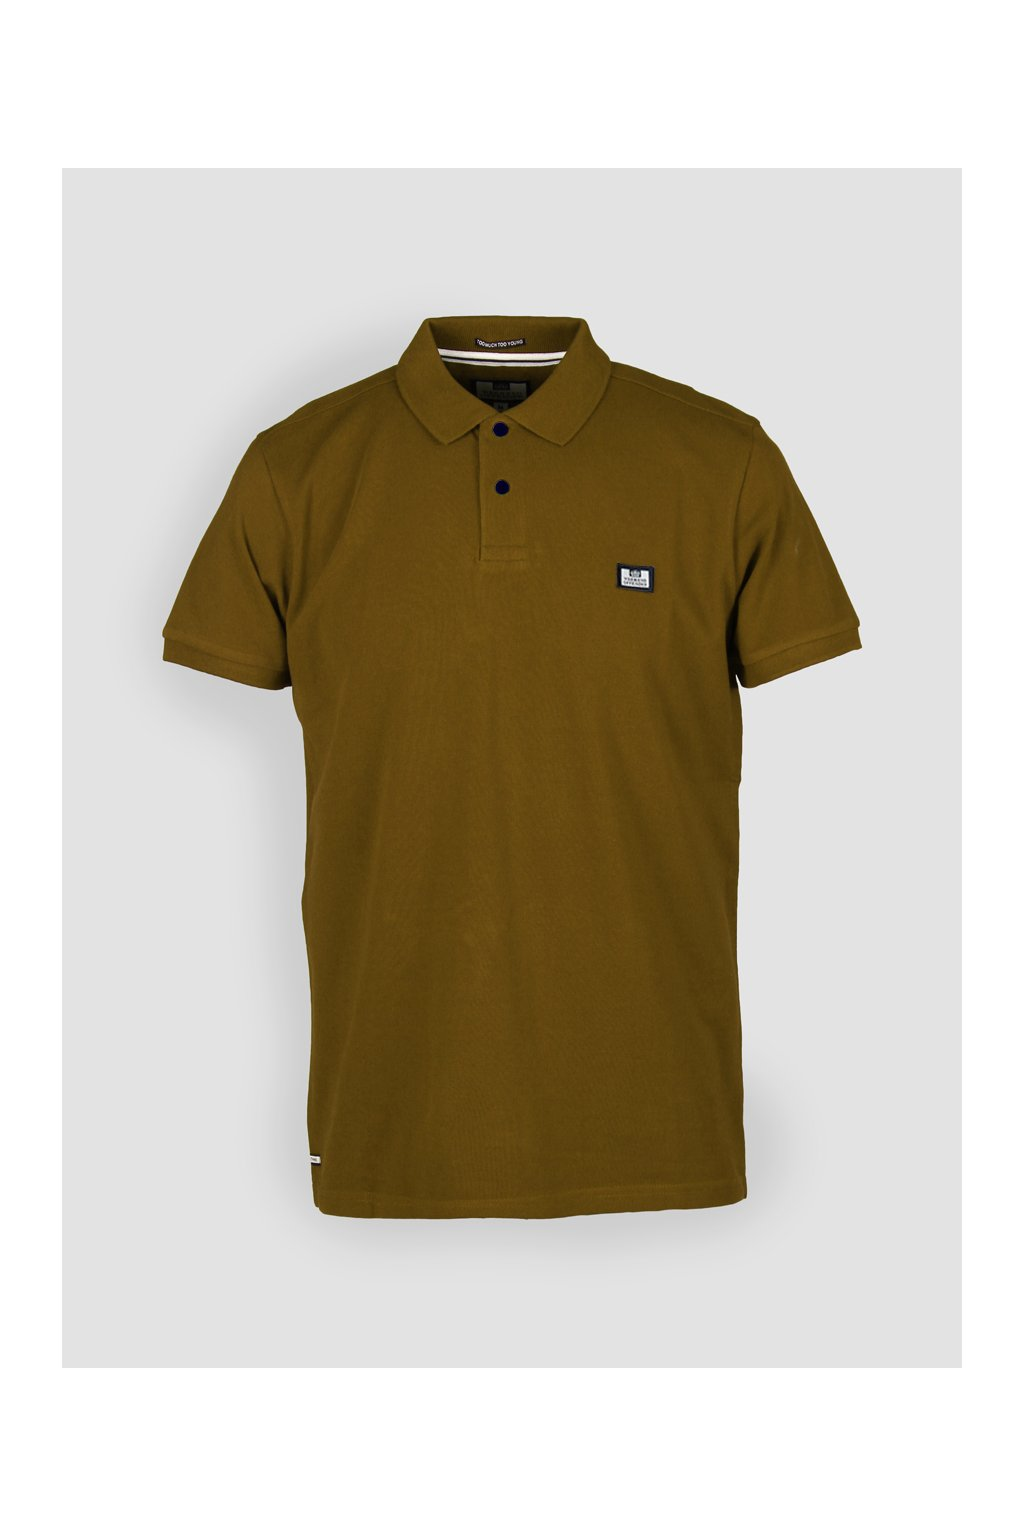 POSS18 01 PREISTLEY BADGE POLO OLIVE